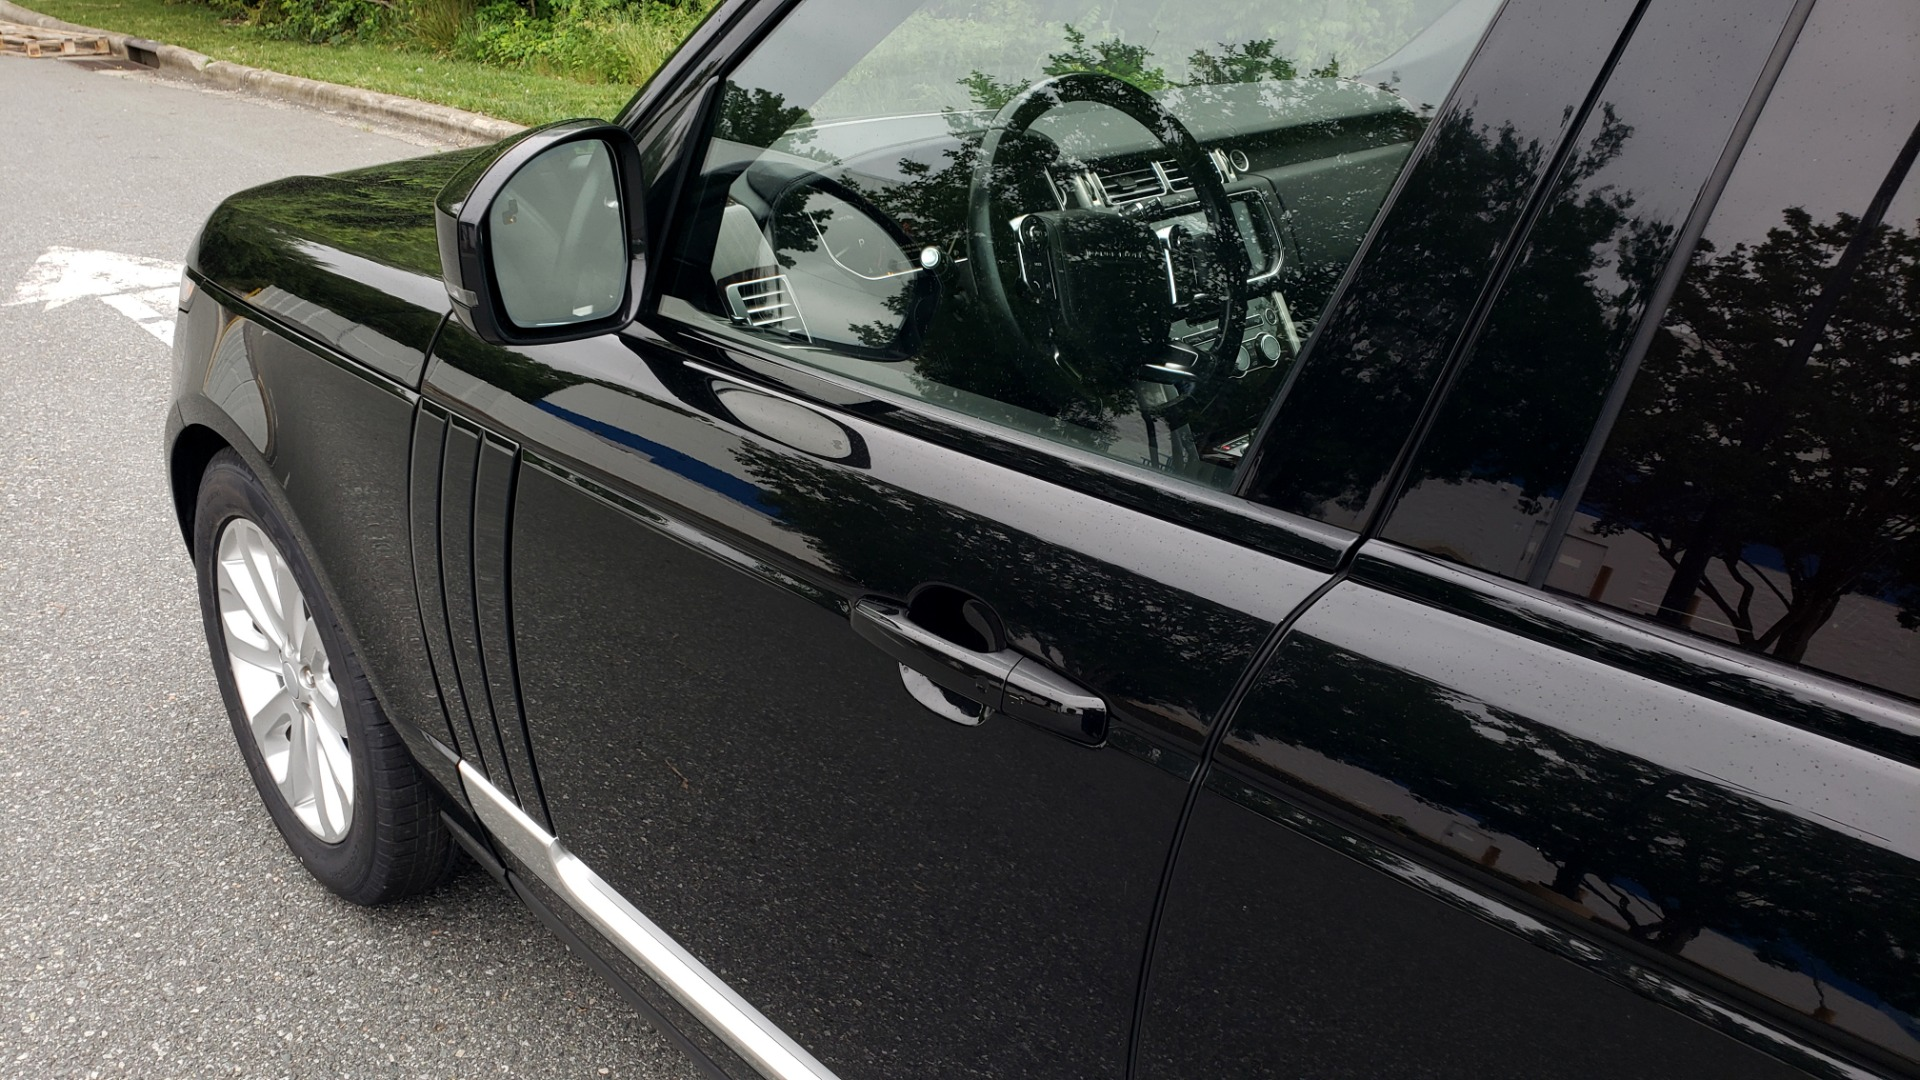 Used 2016 Land Rover Range Rover HSE 3.0L SC V6 / NAV / PANO-ROOF / VENT SEATS / REARVIEW / BLIND SPOT for sale Sold at Formula Imports in Charlotte NC 28227 11